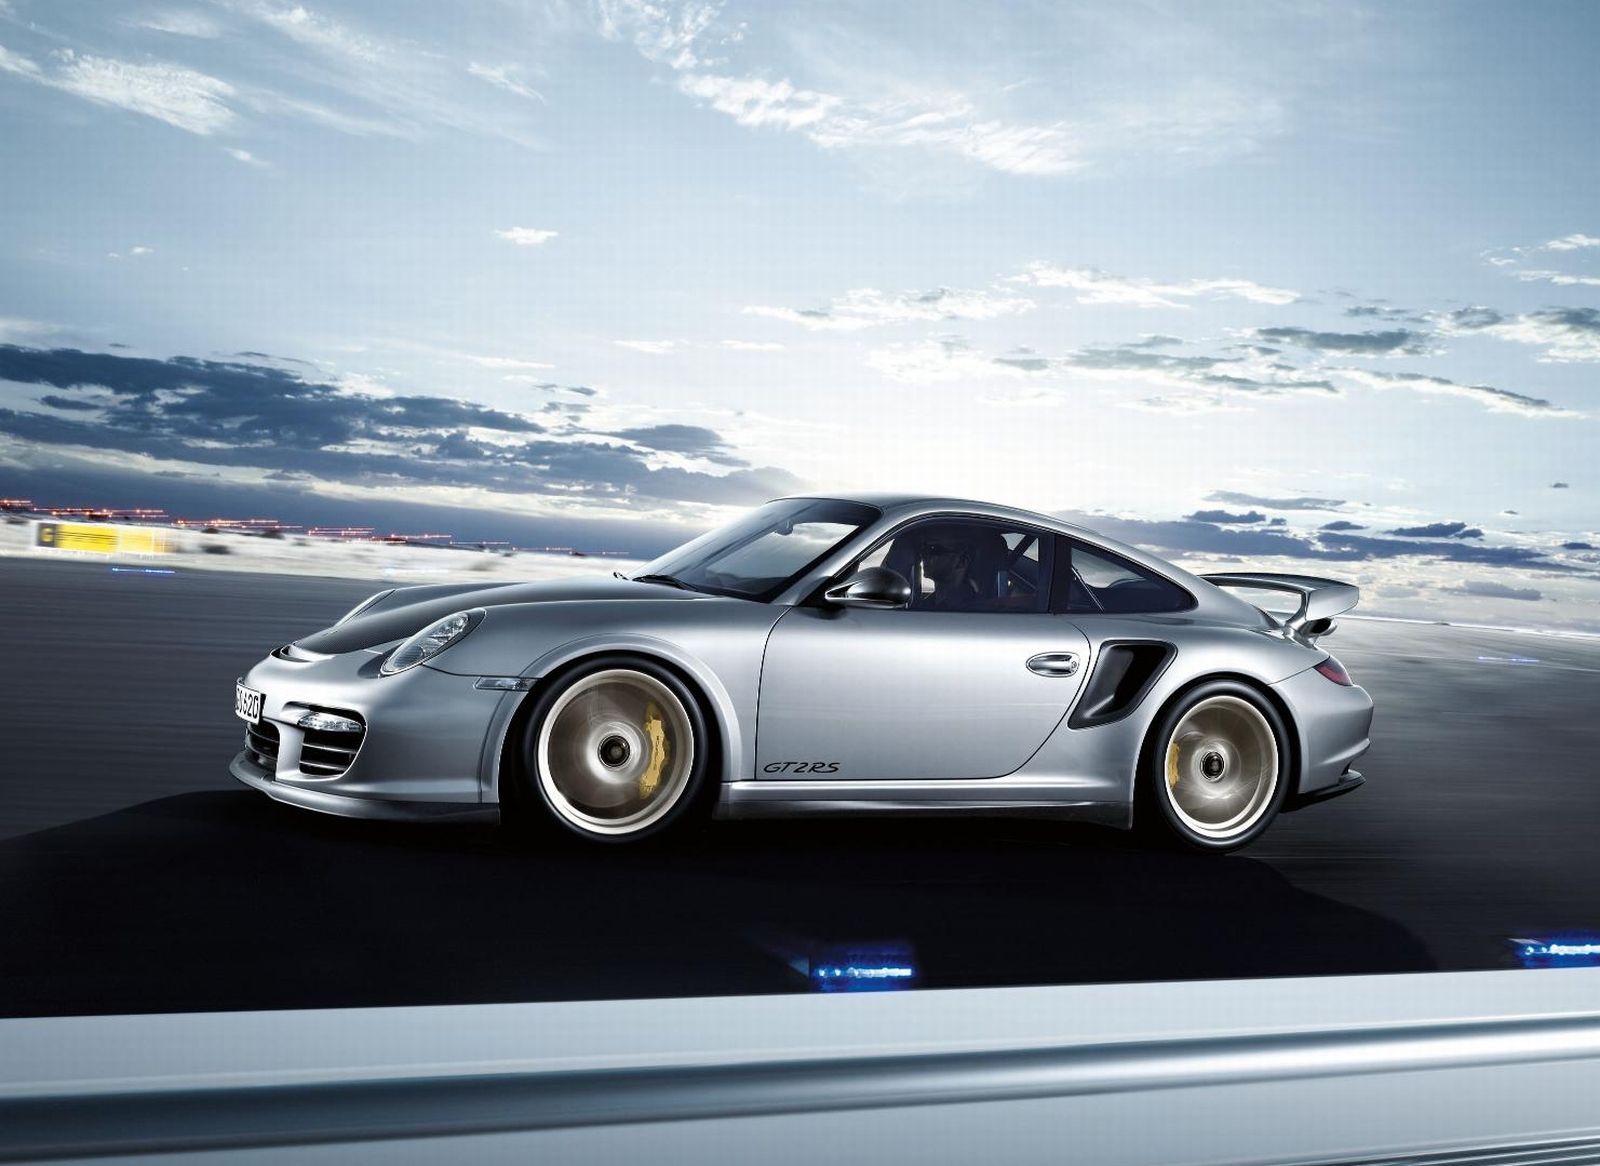 Porsche 911 GT2 1600x1200 Wallpaper Car HD Wallpapers Prices Review 1600x1166